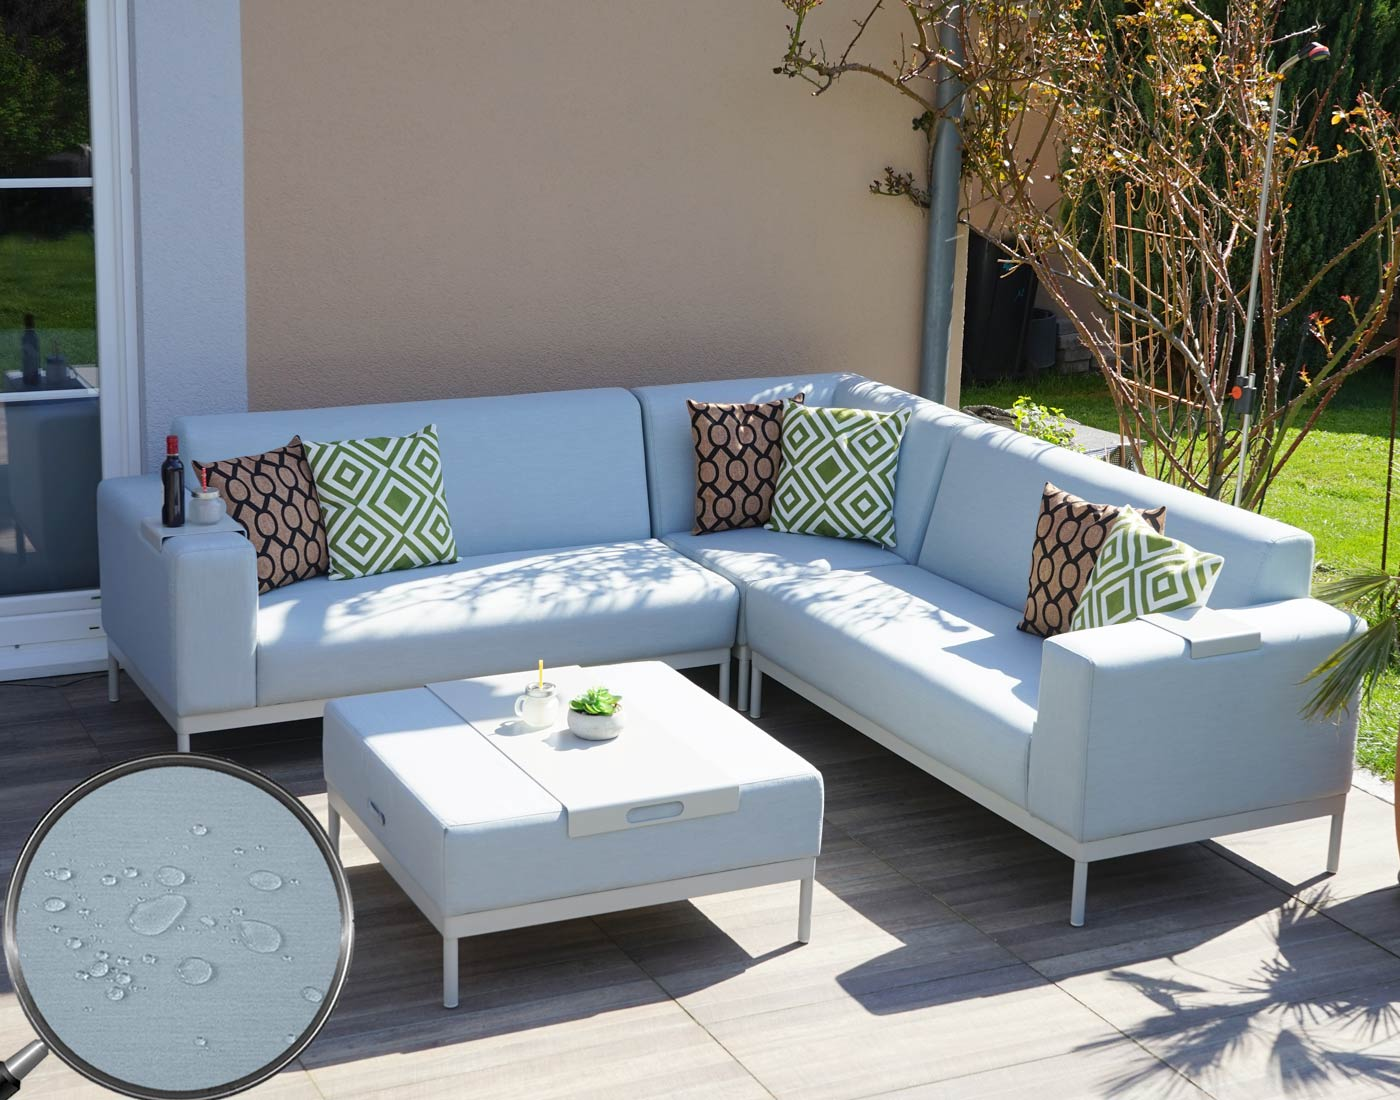 alu garten garnitur hwc c47 sofa lounge set textil outdoor wasserabweisend ebay. Black Bedroom Furniture Sets. Home Design Ideas